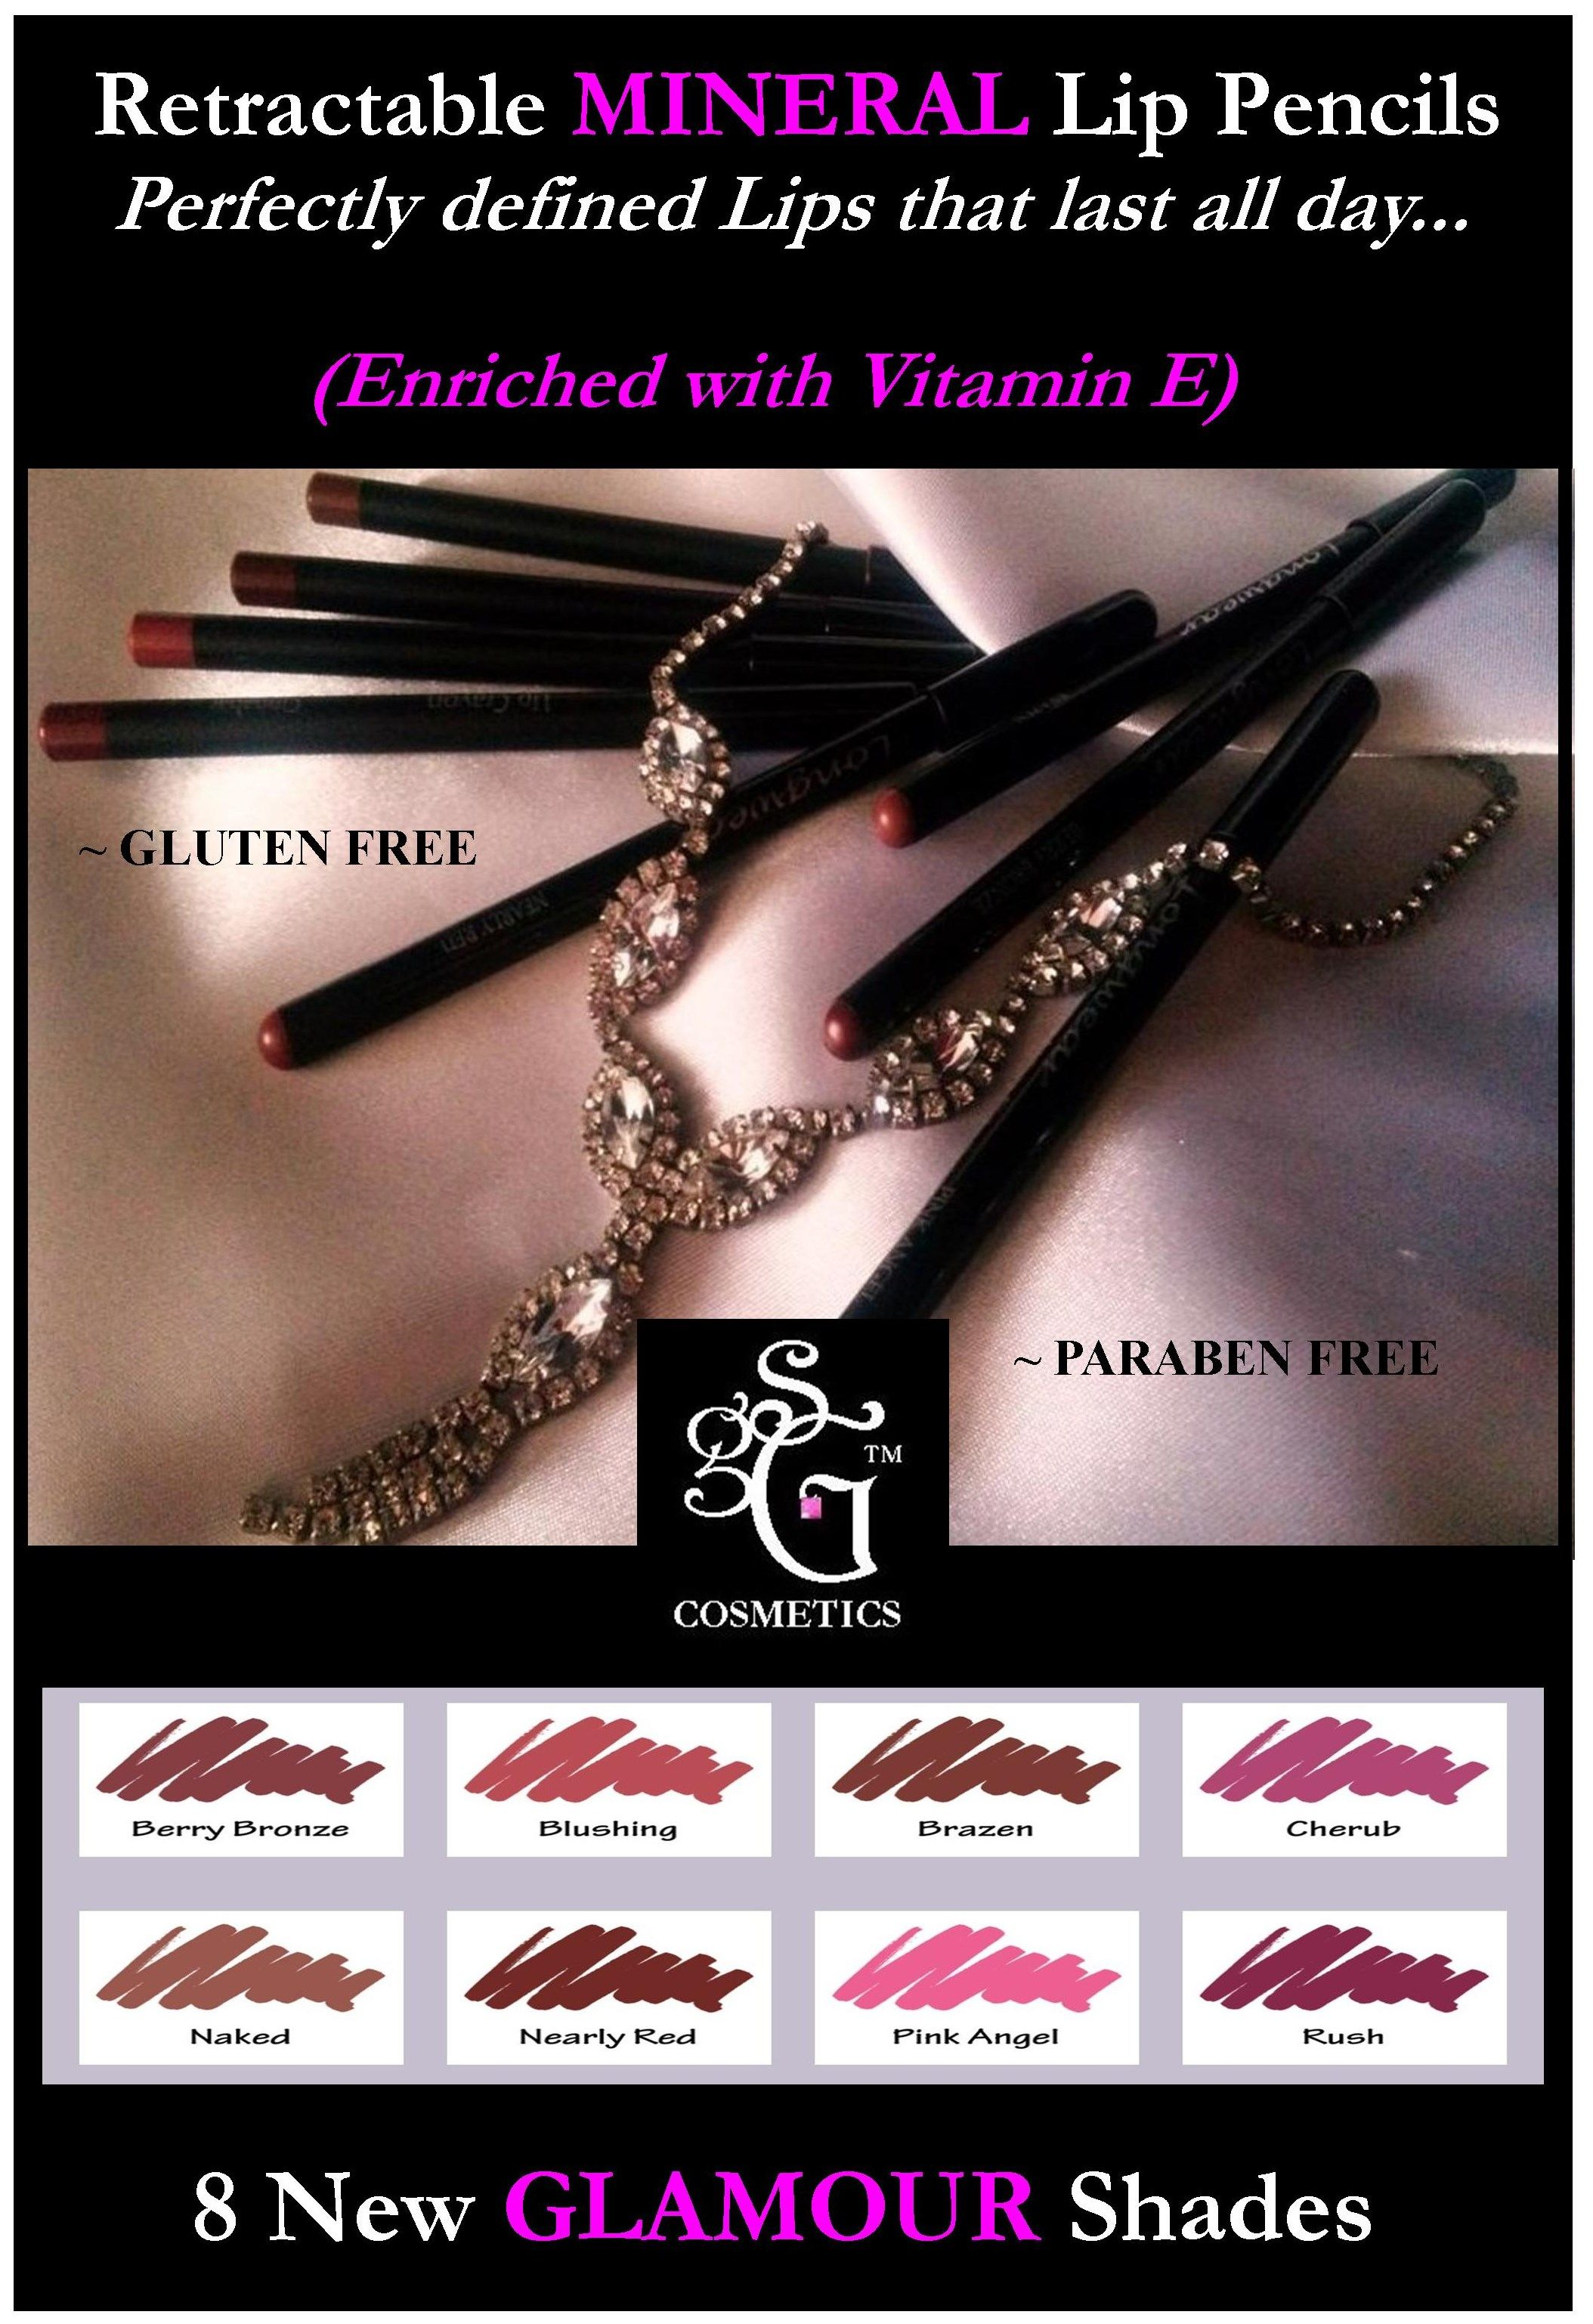 Pin by Glass Slipper GLAMOUR on ~ GSG Mineral Lip Pencils ...